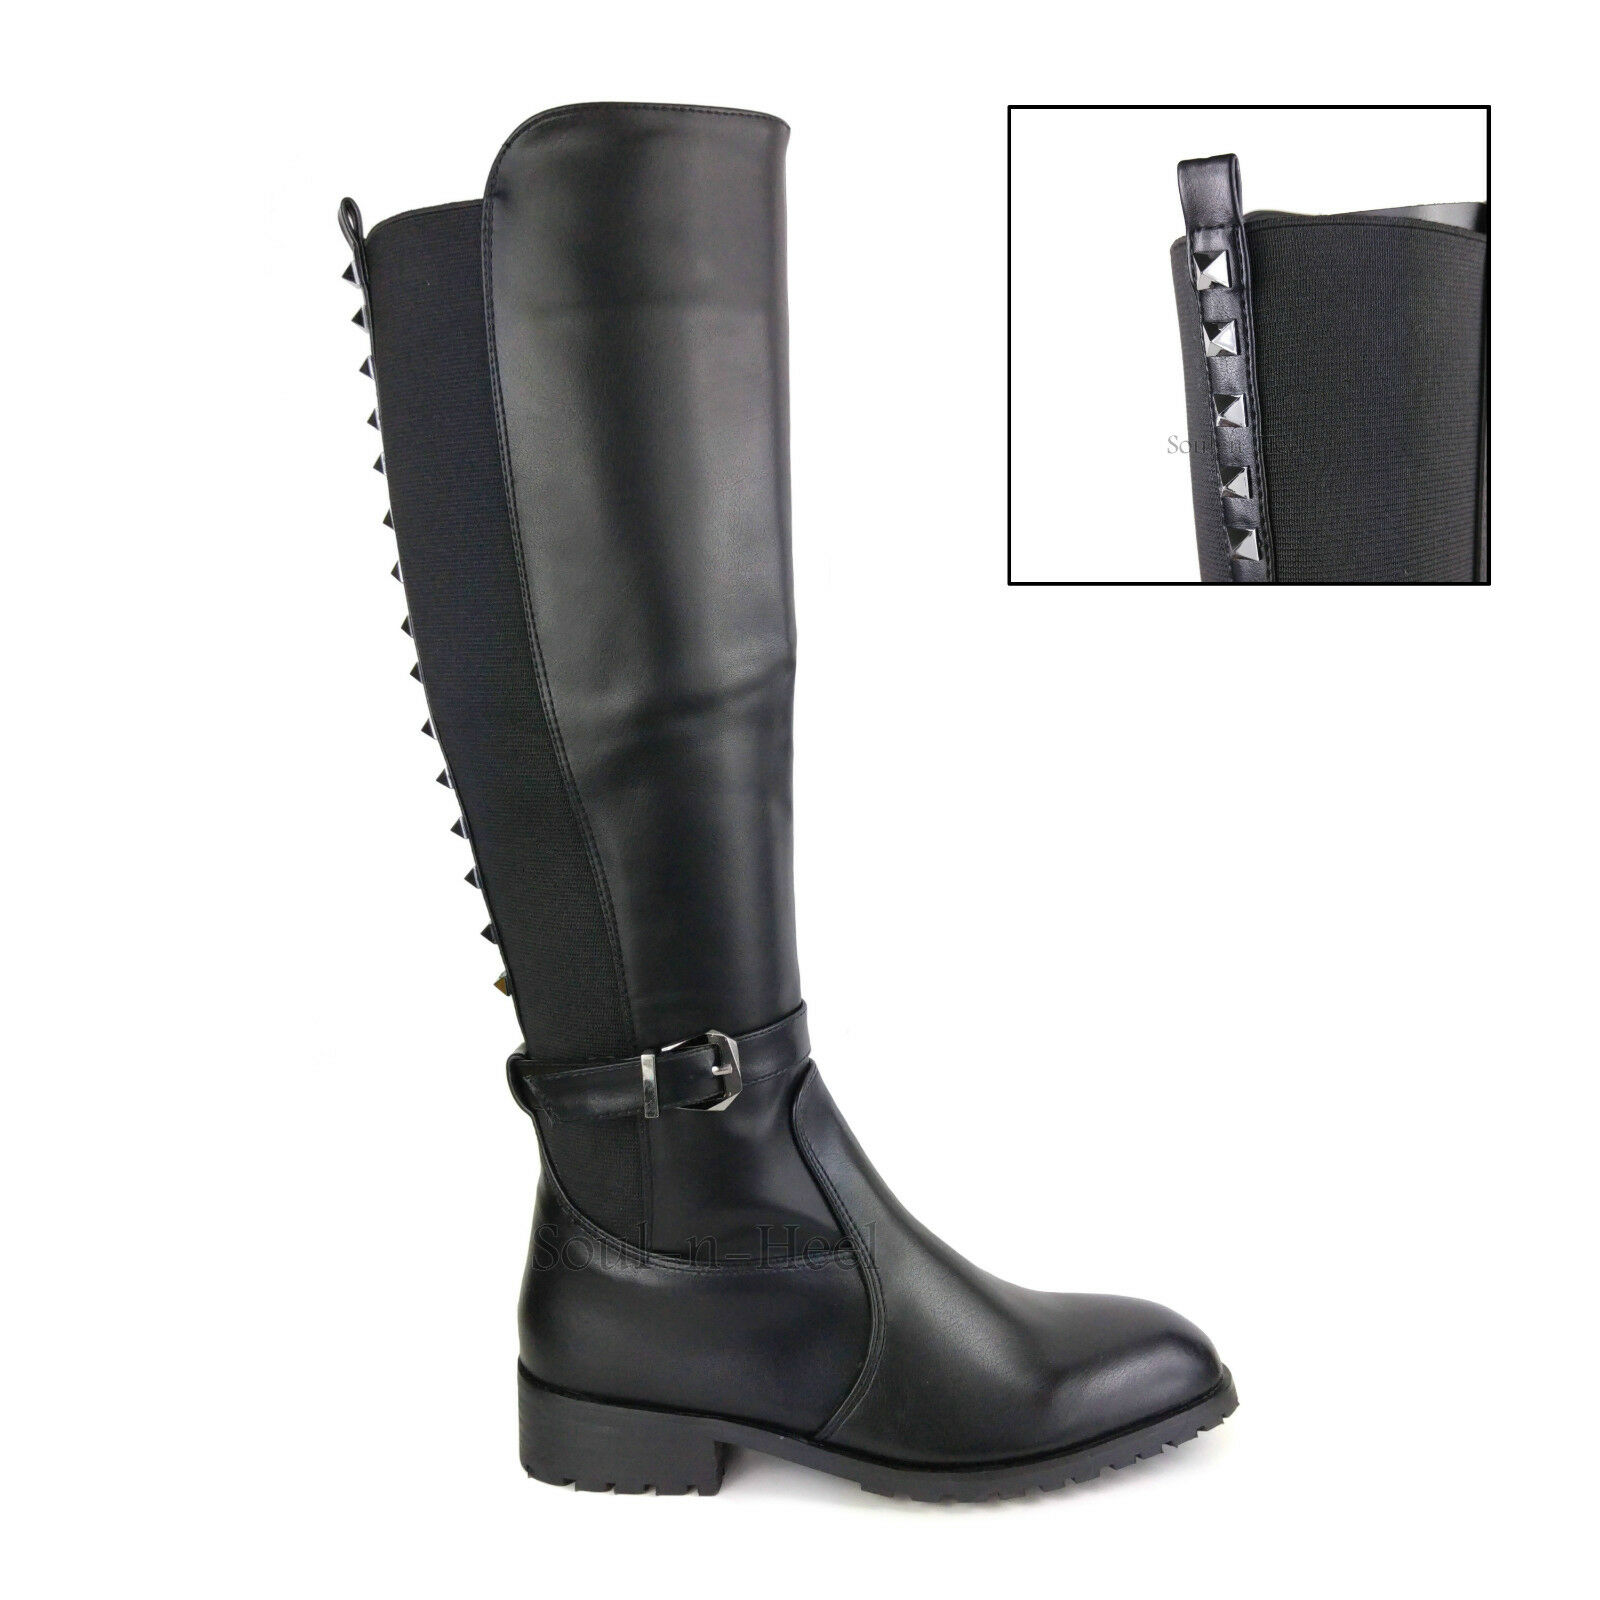 LADIES Damenschuhe KNEE HIGH STUDDED LEATHER FLAT LOW HEEL STRETCH RIDING Stiefel SIZE